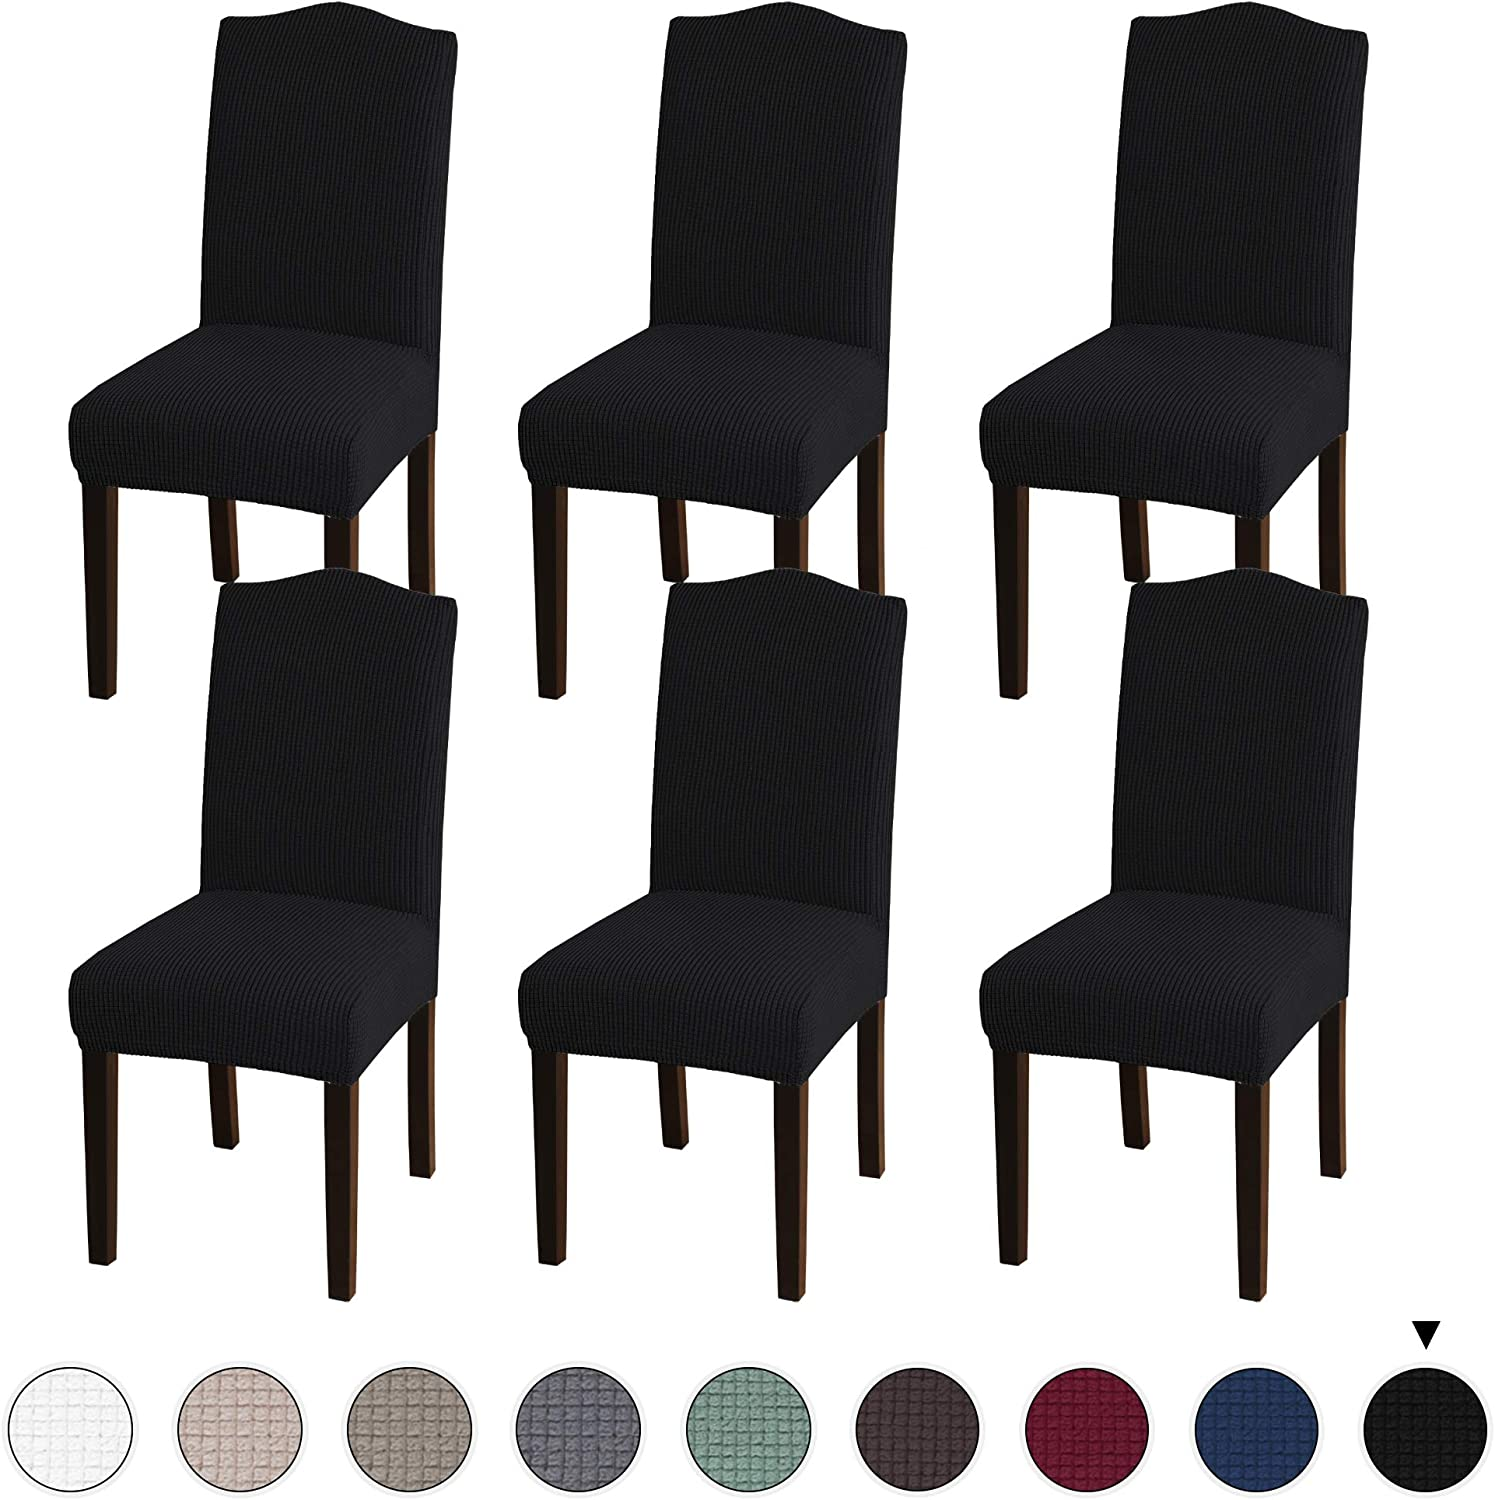 Turquoize Stretch Dining Chair Velvet Fabric Slipcovers Washable Removable Chair Slipcover Dining Chair Protector Cover for Dining Room Set of 6, Black